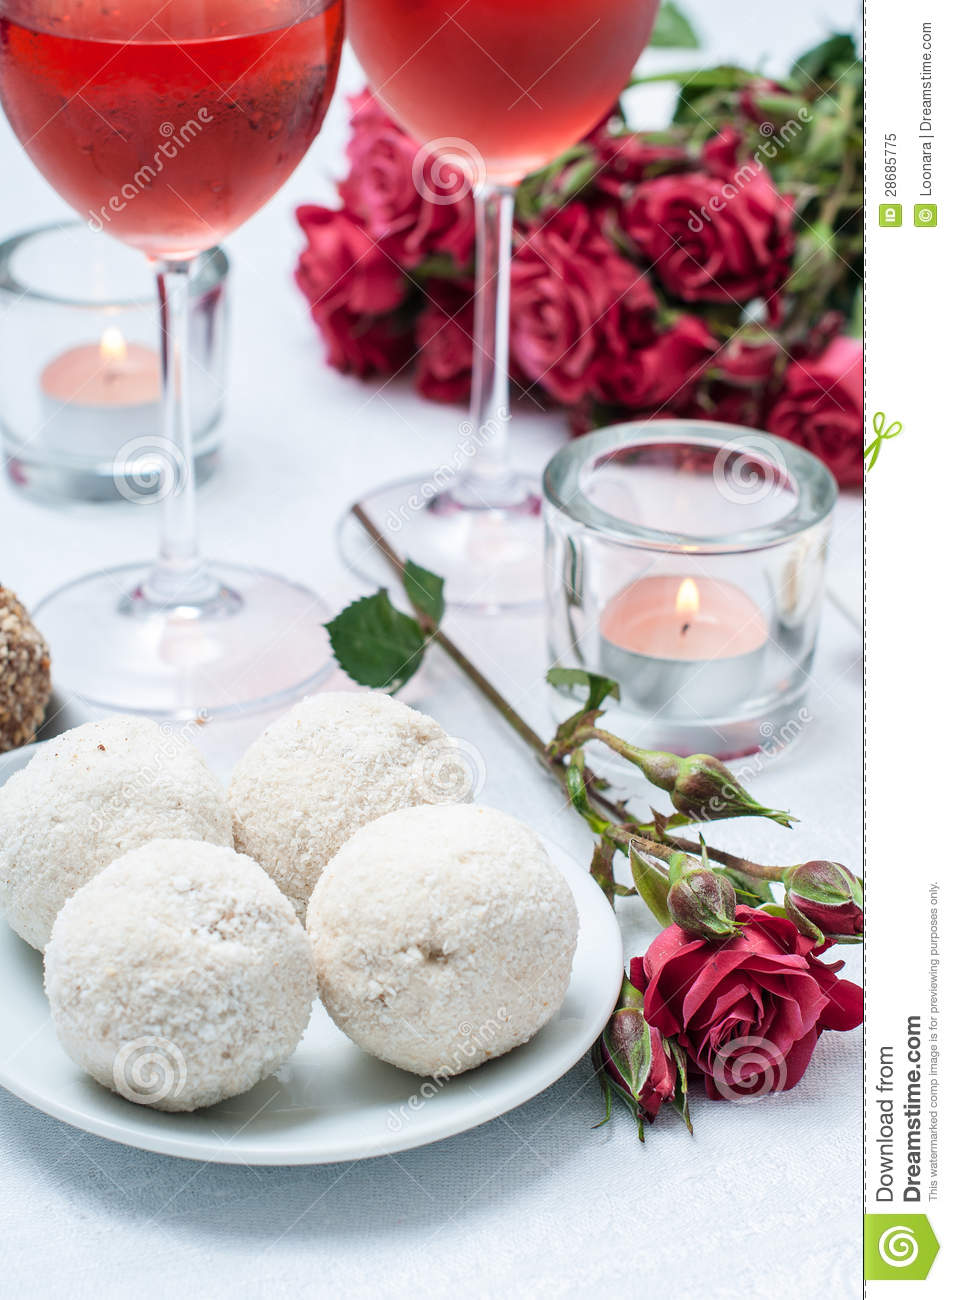 Coconut Cakes Flowers And Rose Wine Royalty Free Stock